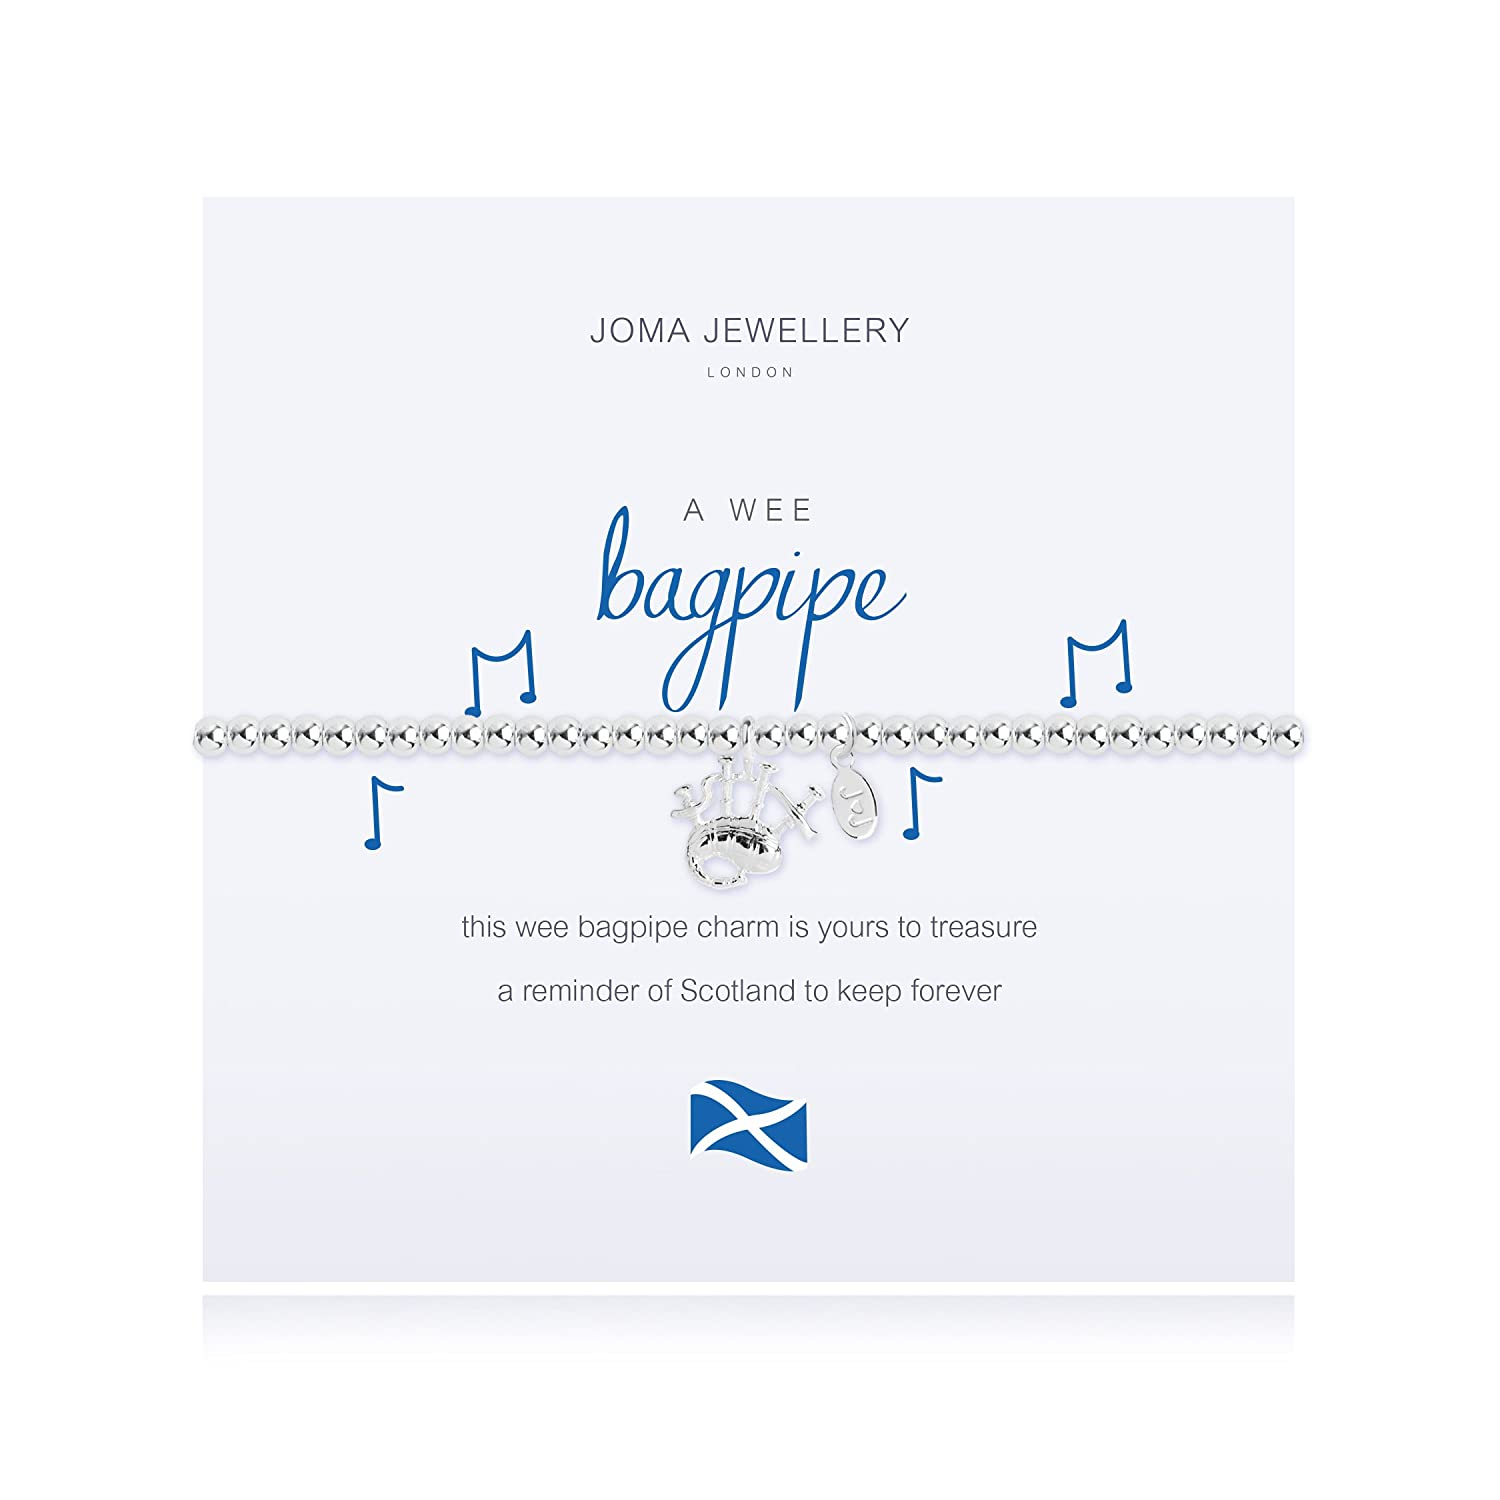 Joma Jewellery A wee Bagpipe Bracelet with Gift Bag giP86dcD